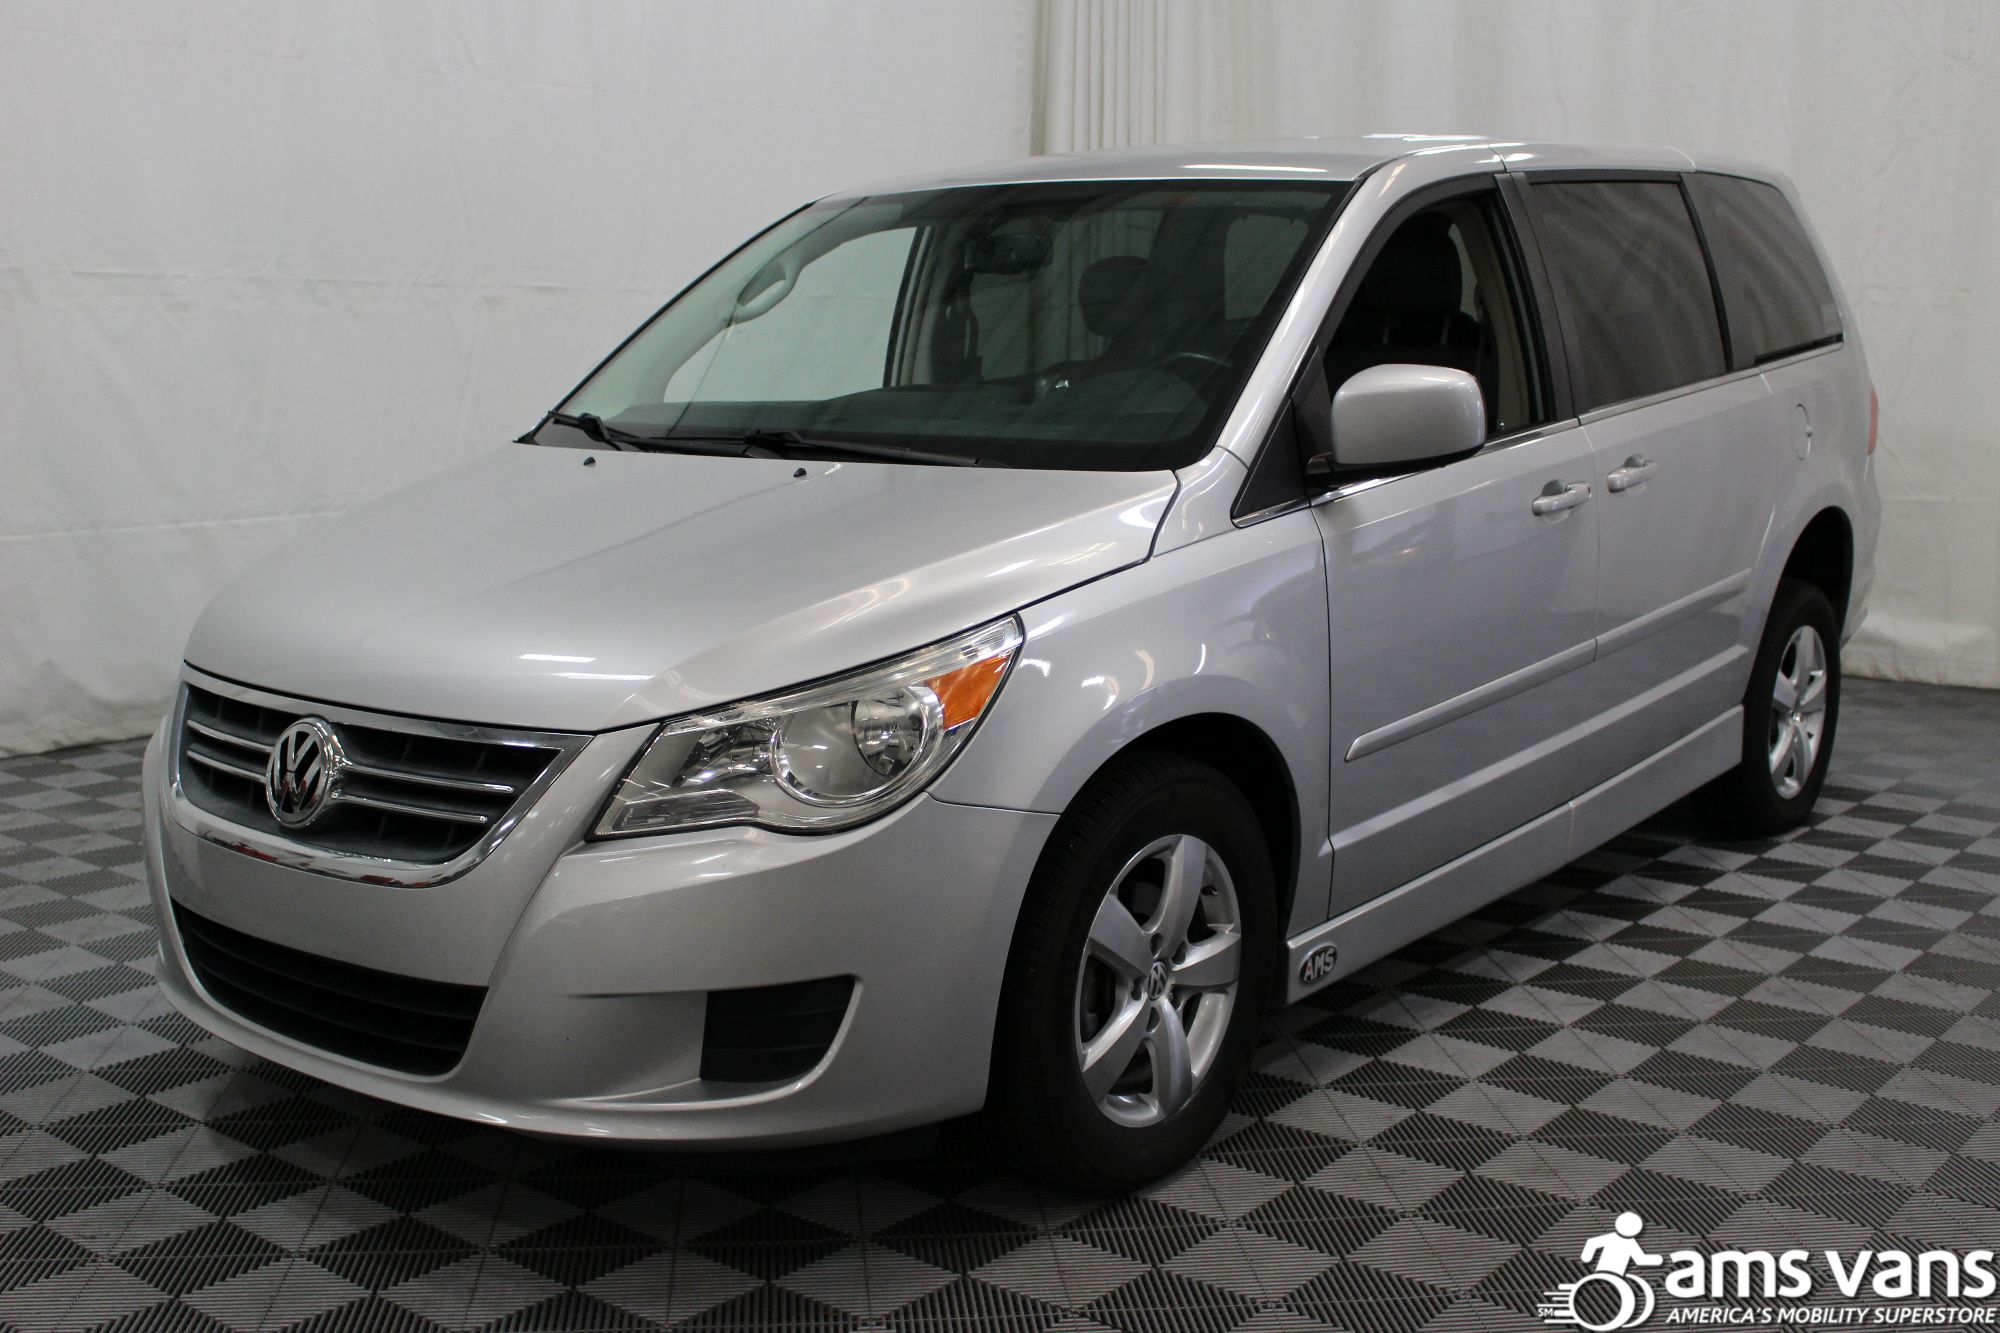 2010 Volkswagen Routan SE Wheelchair Van For Sale #17